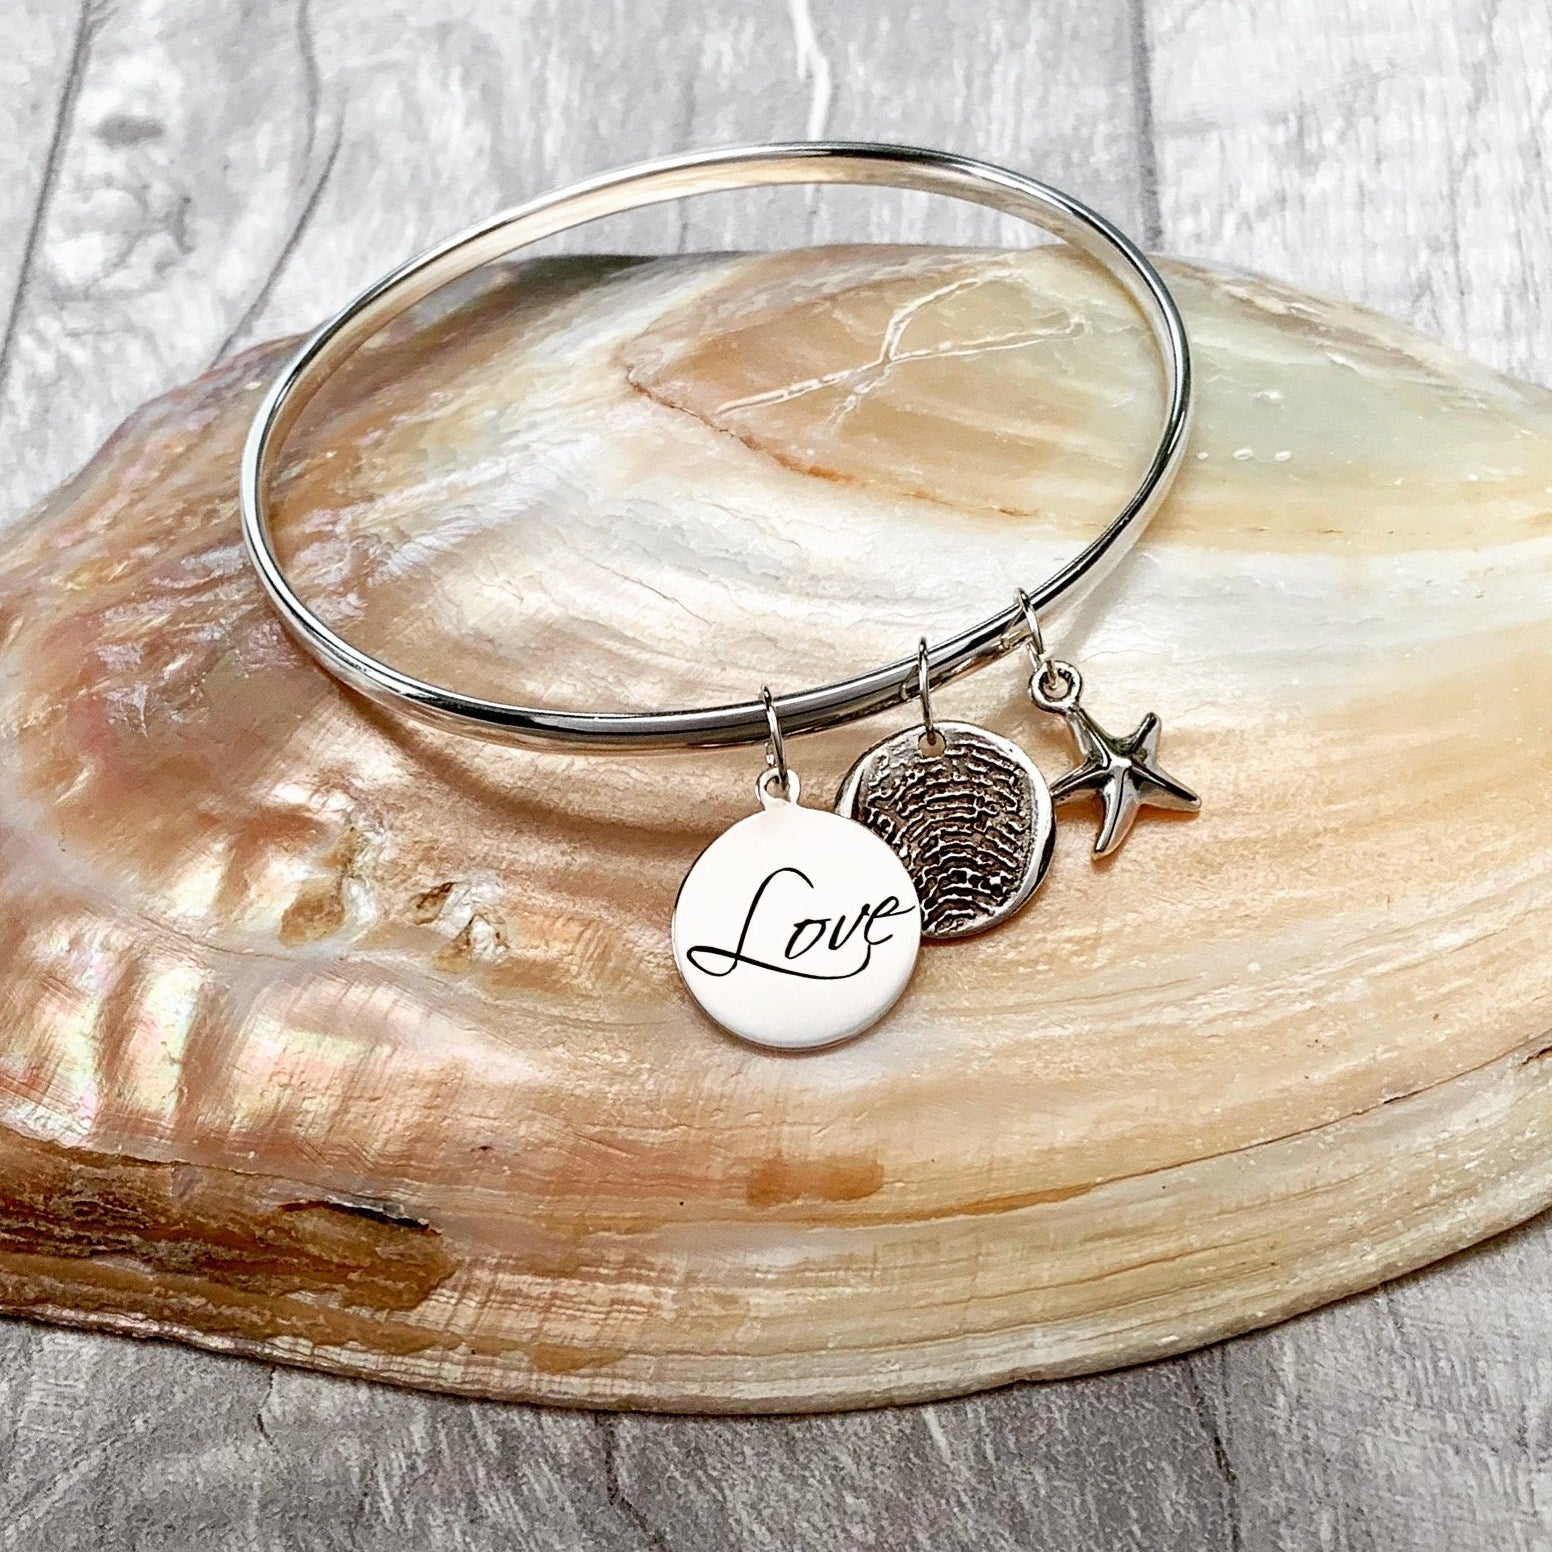 Love Fingerprint Bangle - Silver Magpie Fingerprint Jewellery